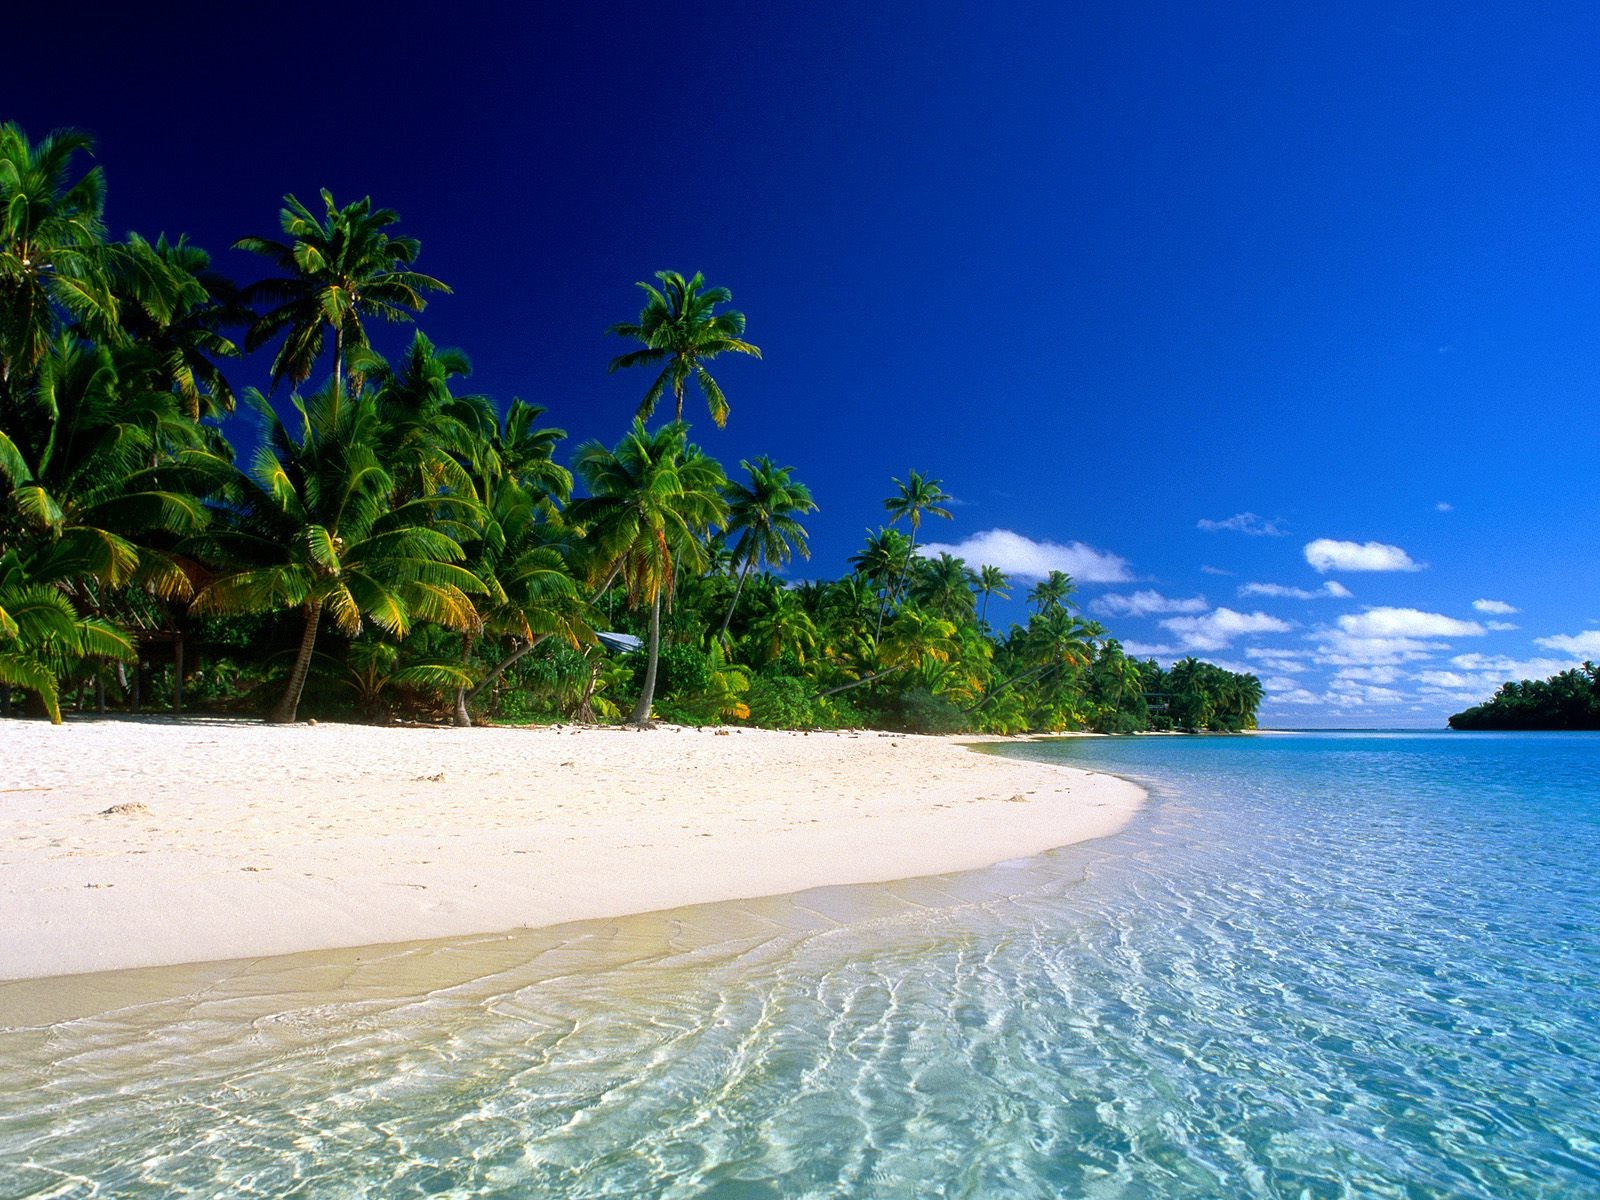 Most Beautiful Beaches In The World Wallpaper Images 1600x1200